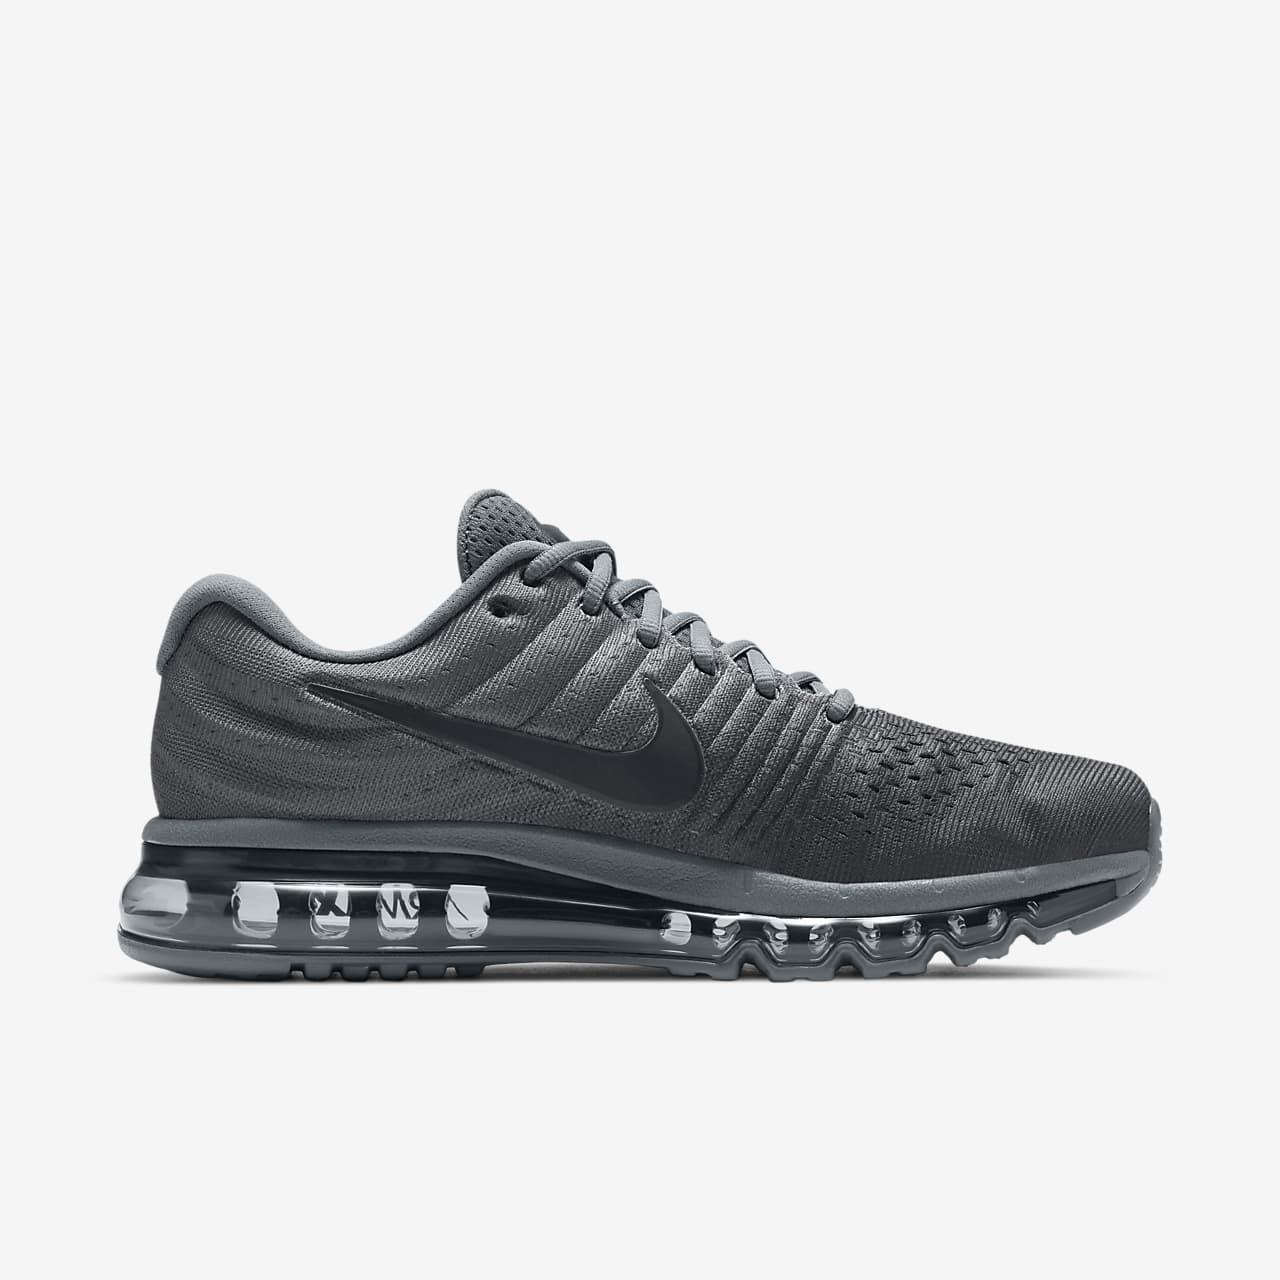 brand new 3f2bb 1b756 ... Nike Air Max 2017 Men s Shoe